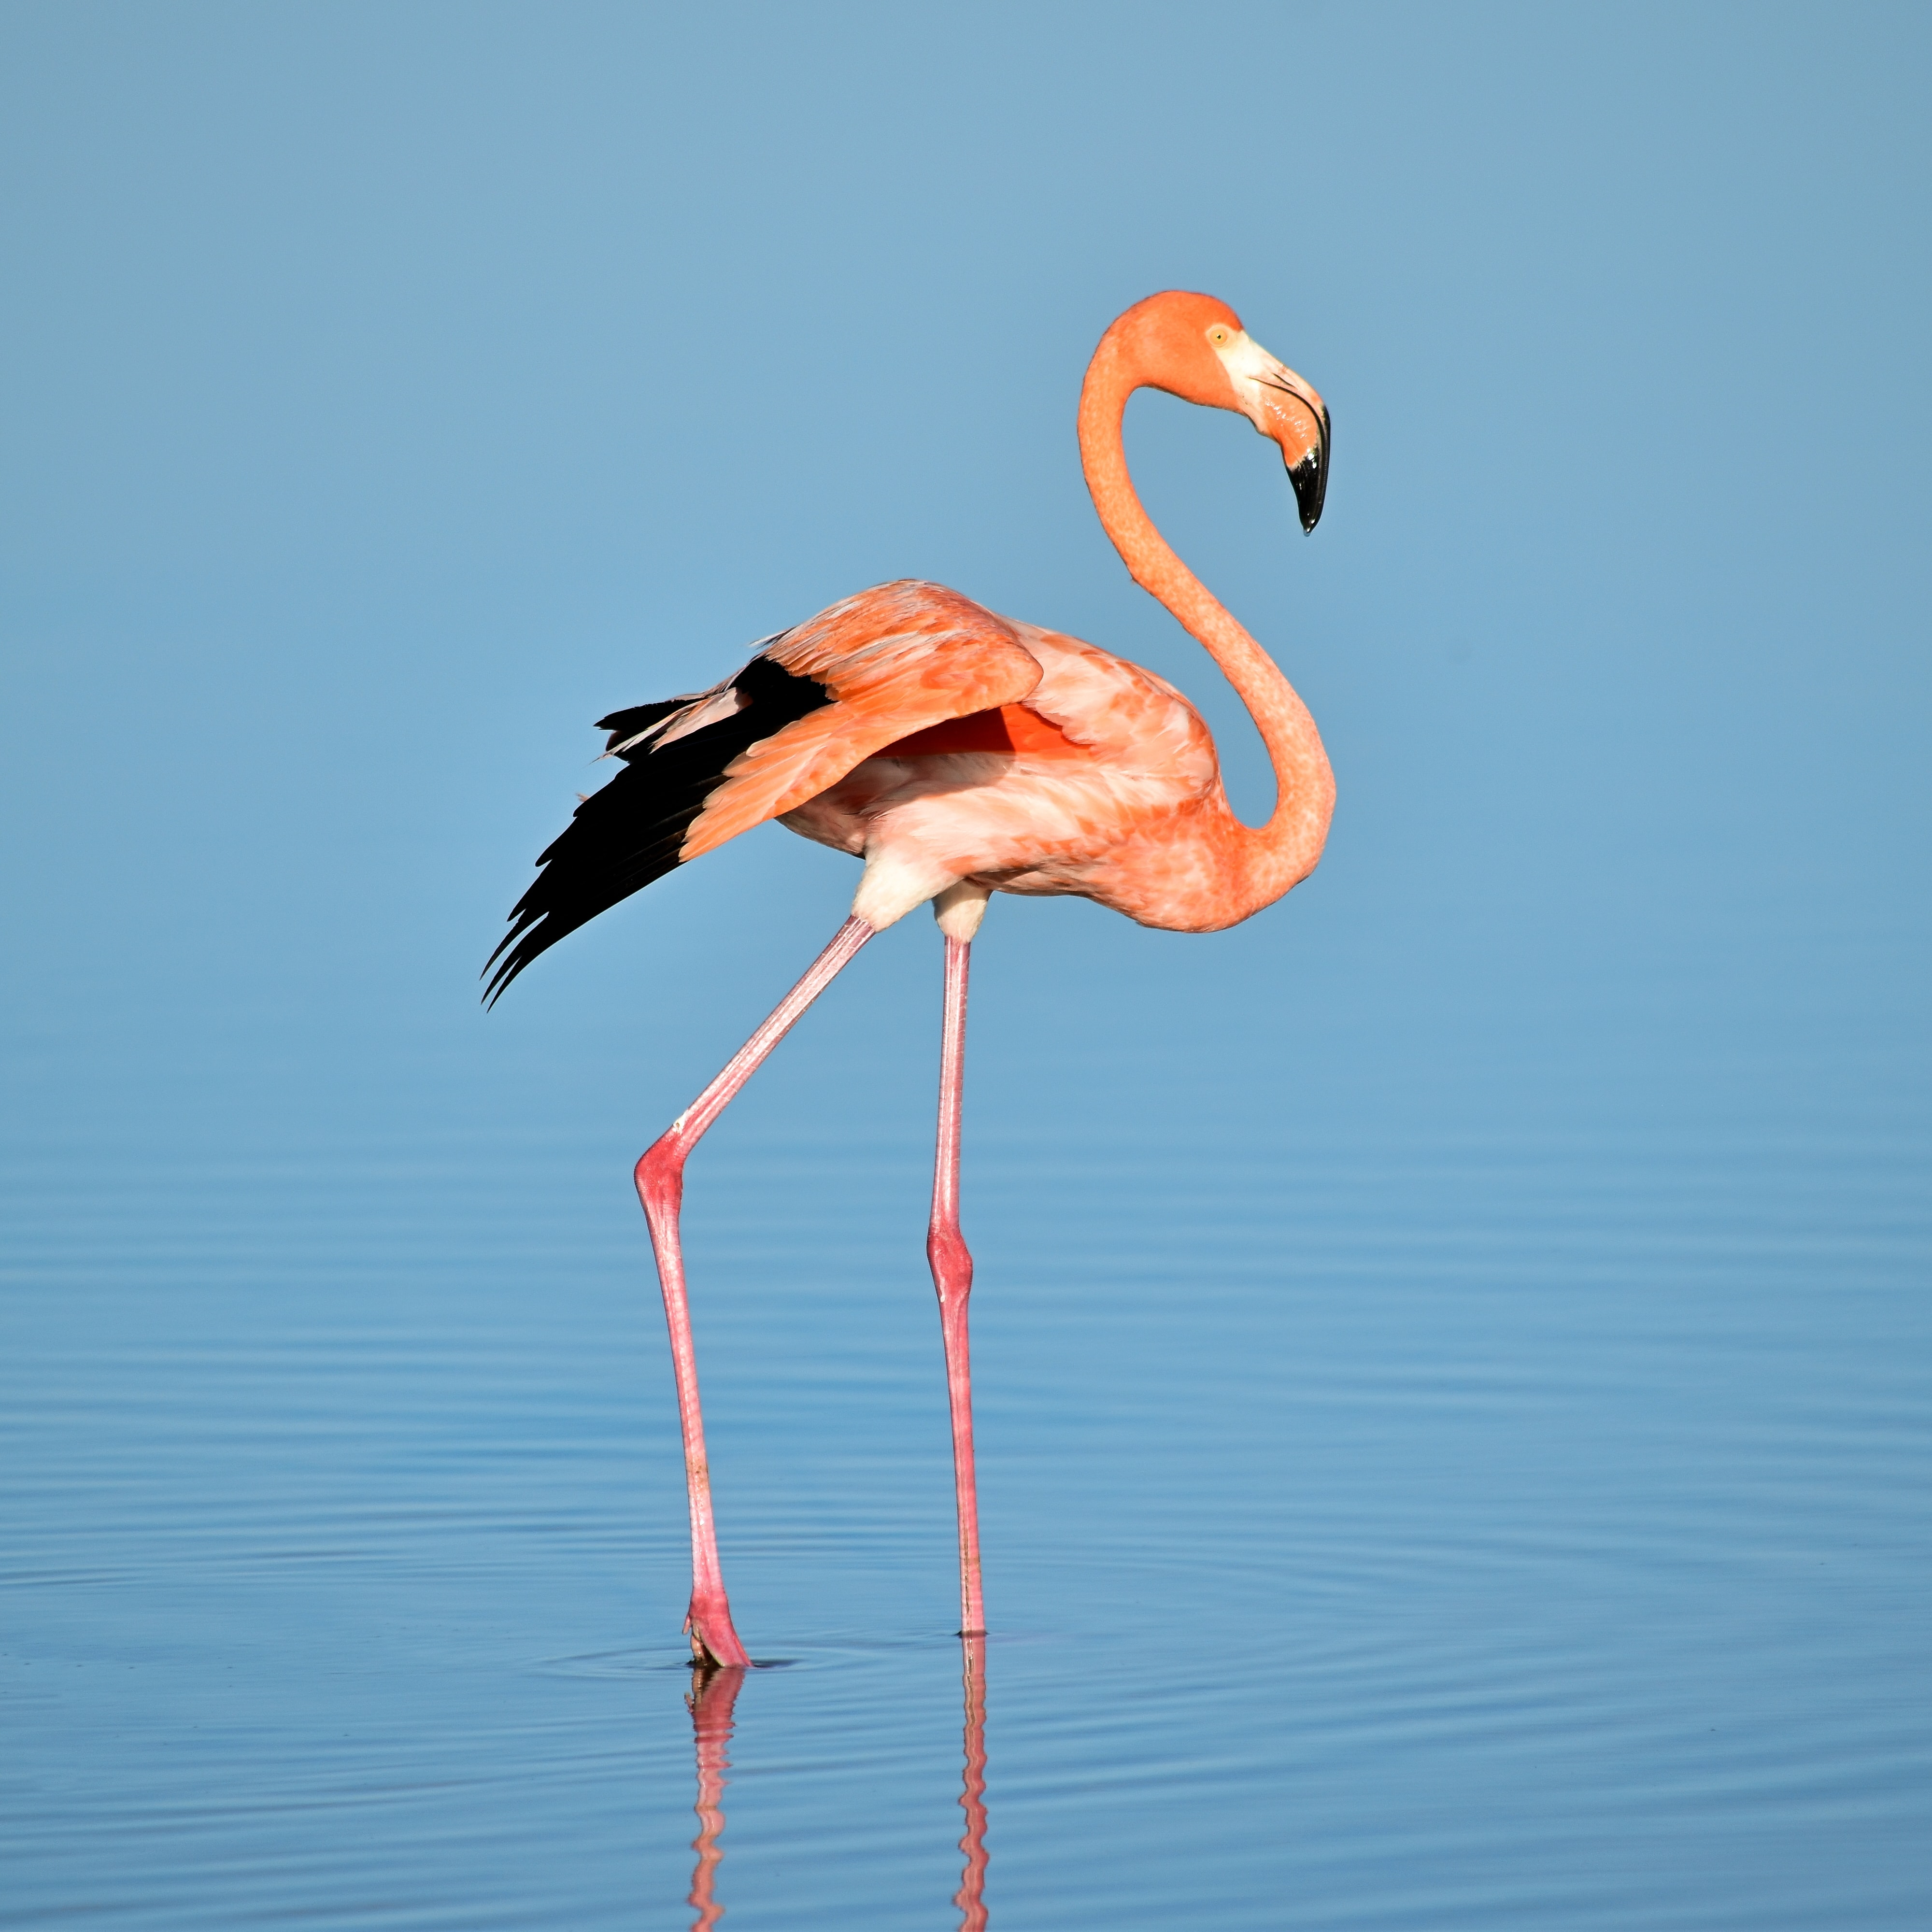 Pink flamingo stands in a calm lake